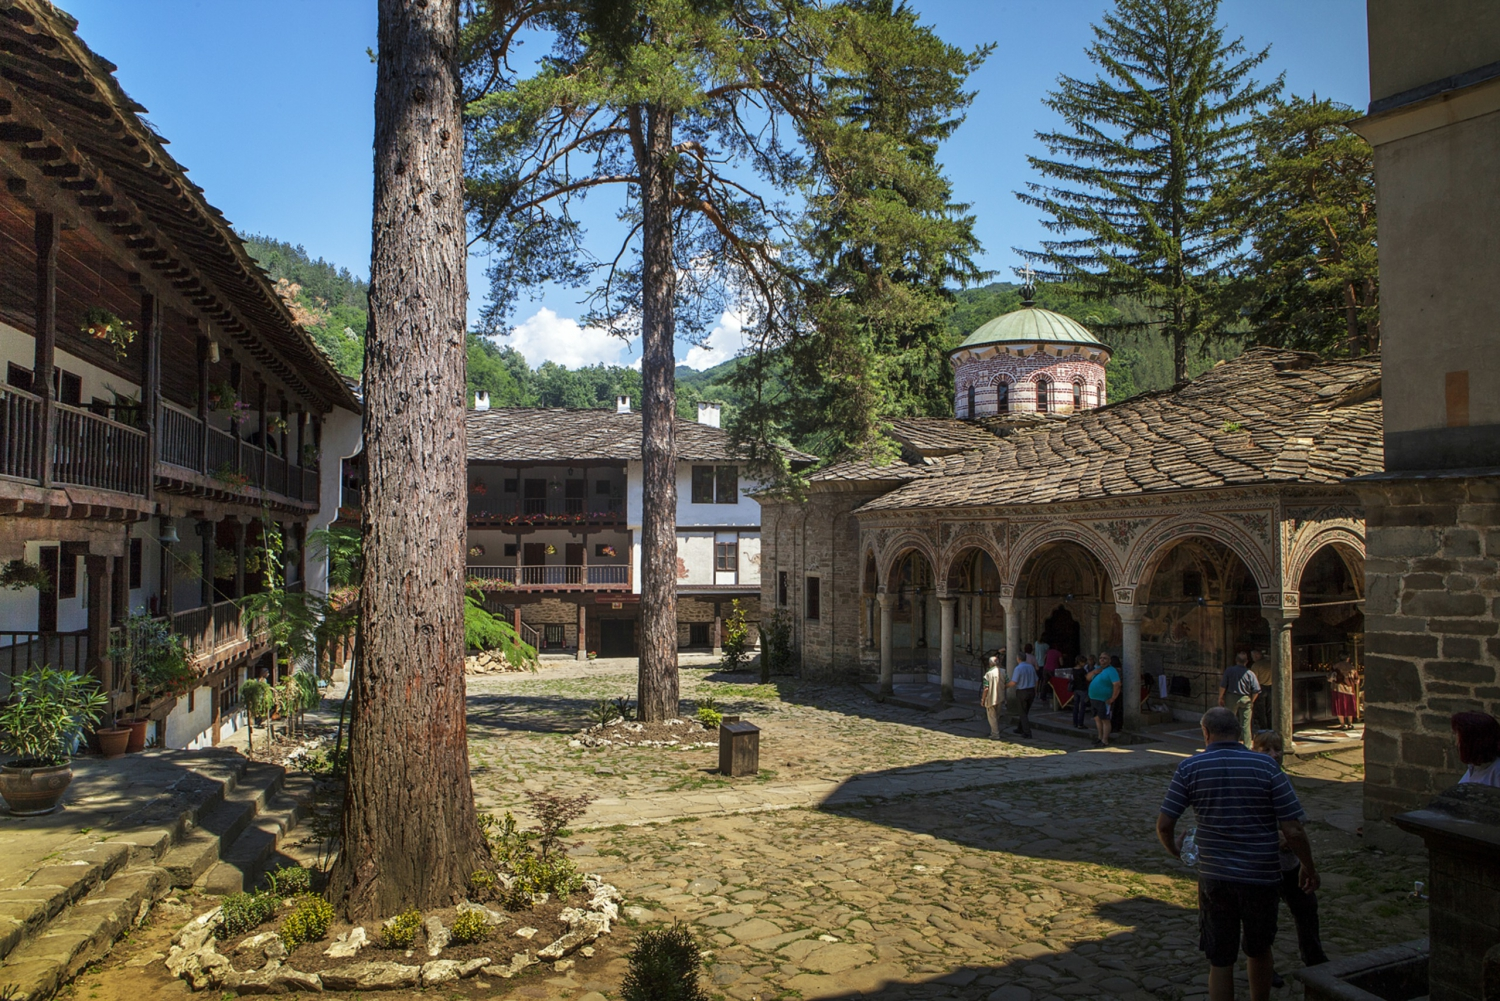 Sofia: Full Day Trip to Troyan Monastery With Lunch